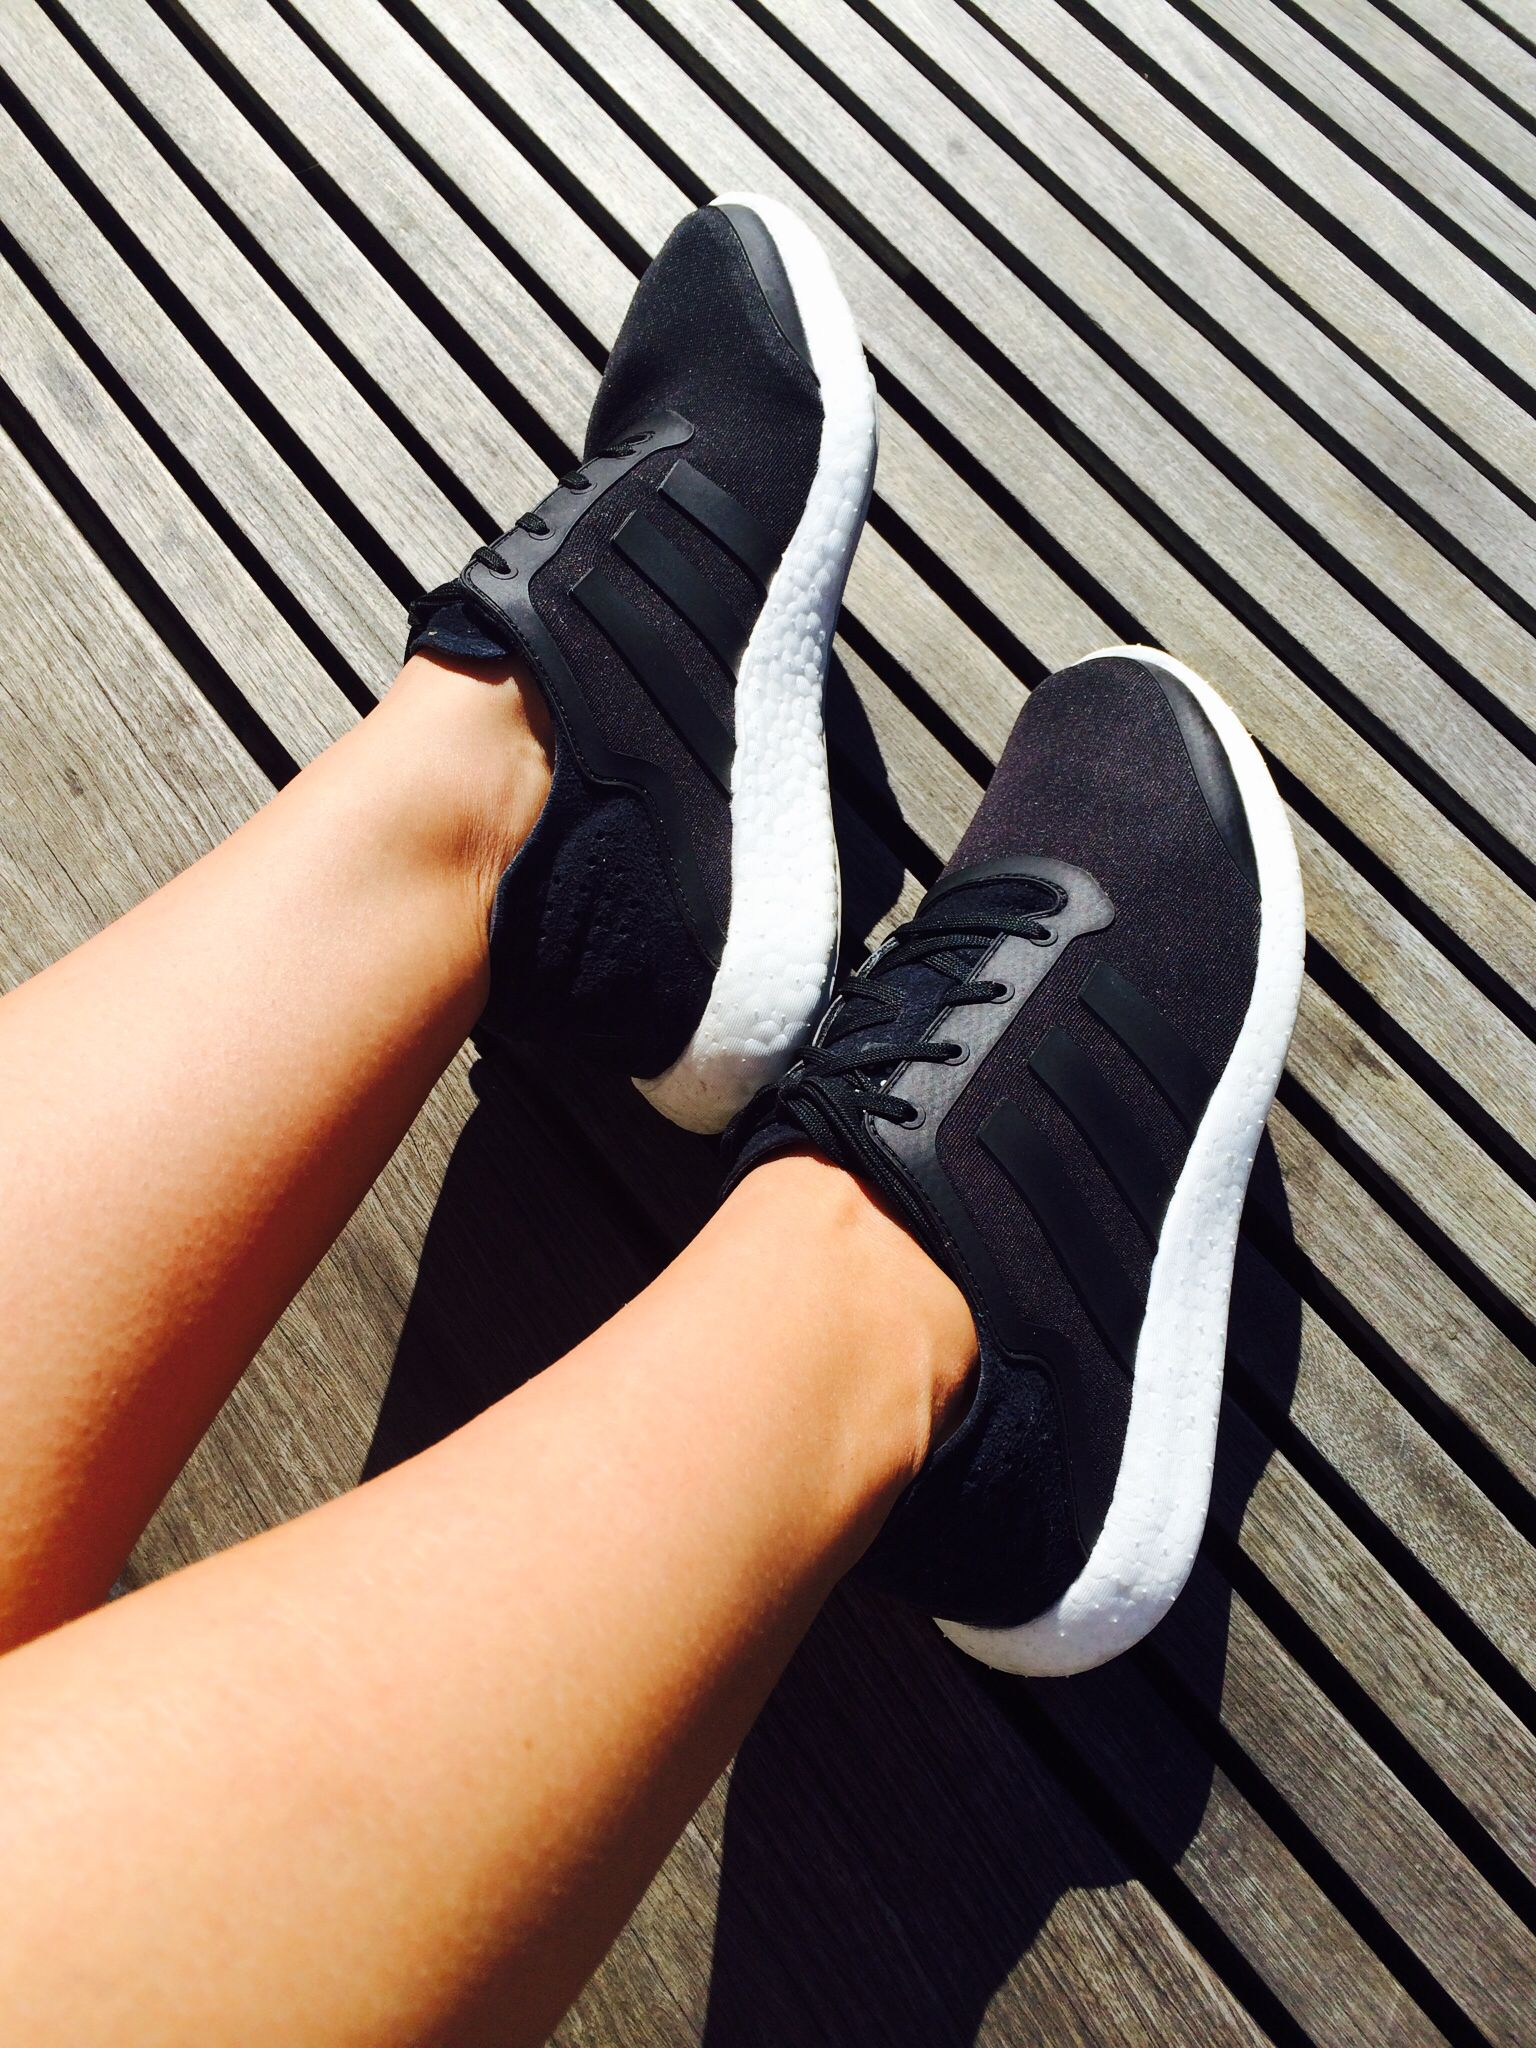 adidas boost women's black and white